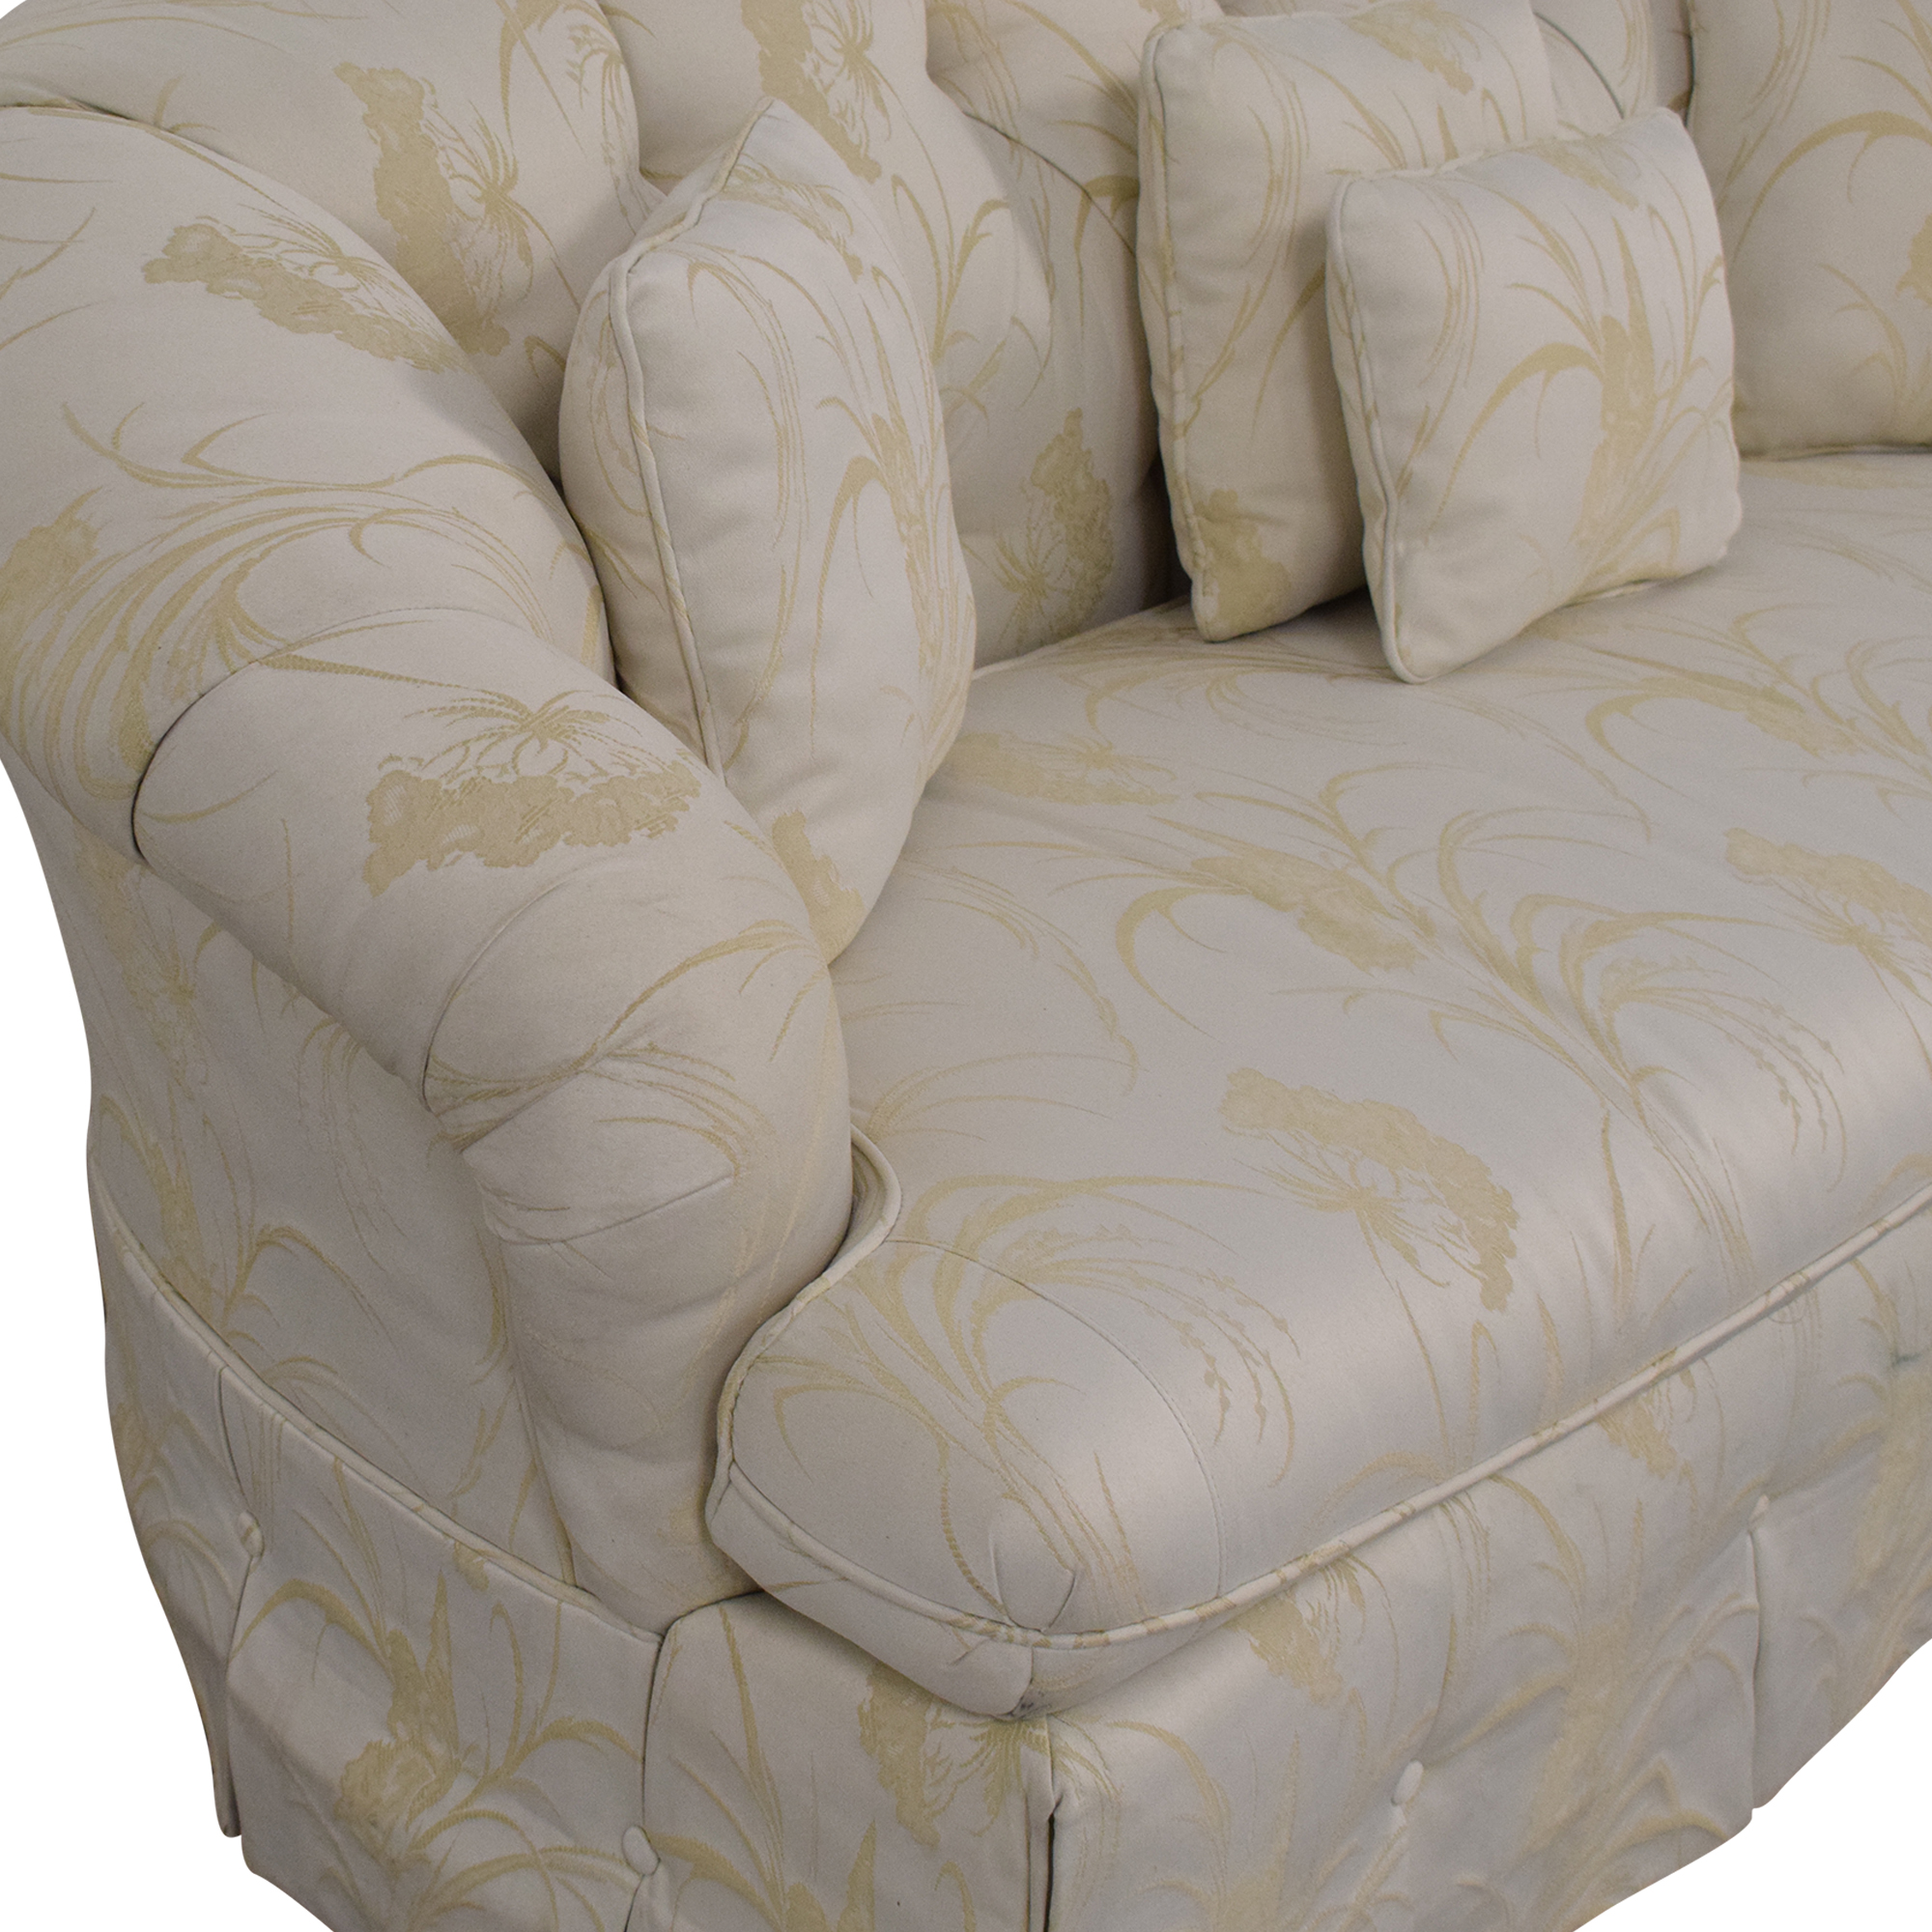 Key City Furniture Key City Furniture Tufted Loveseat Sofas